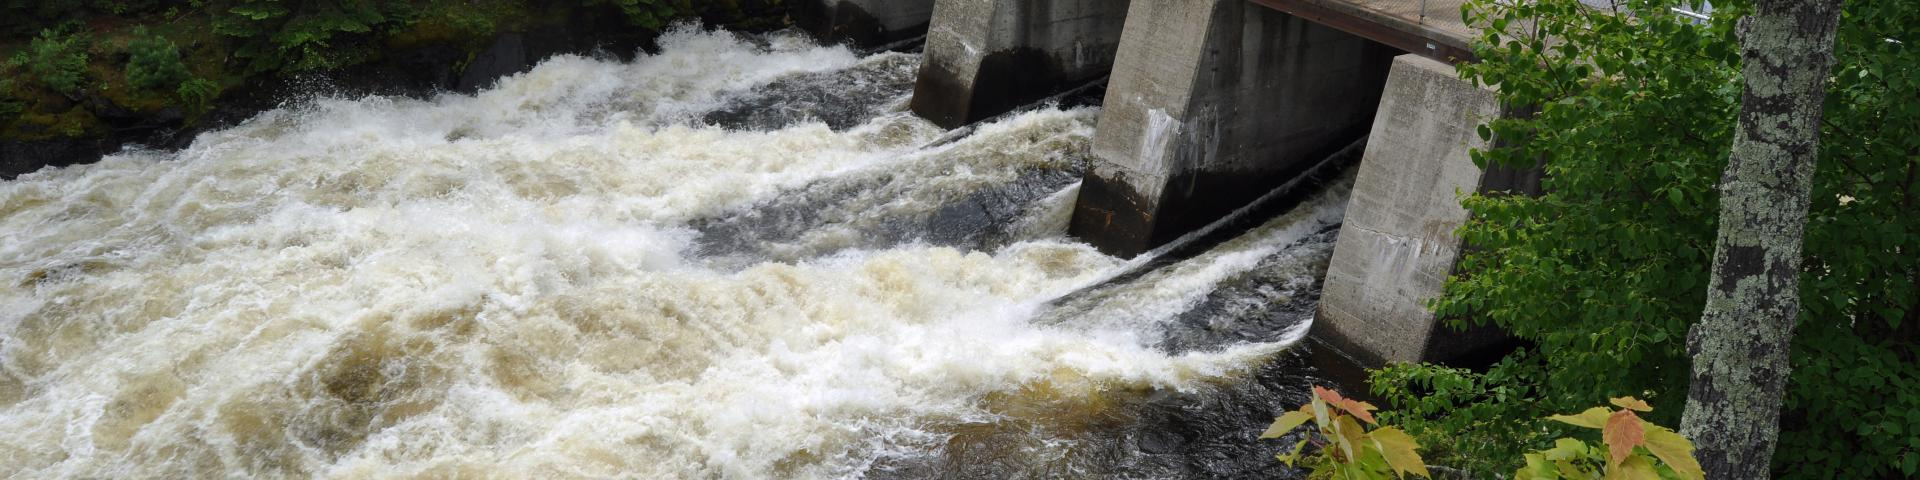 Kettle Falls, Minnesota - Water Rushing Through the Dam